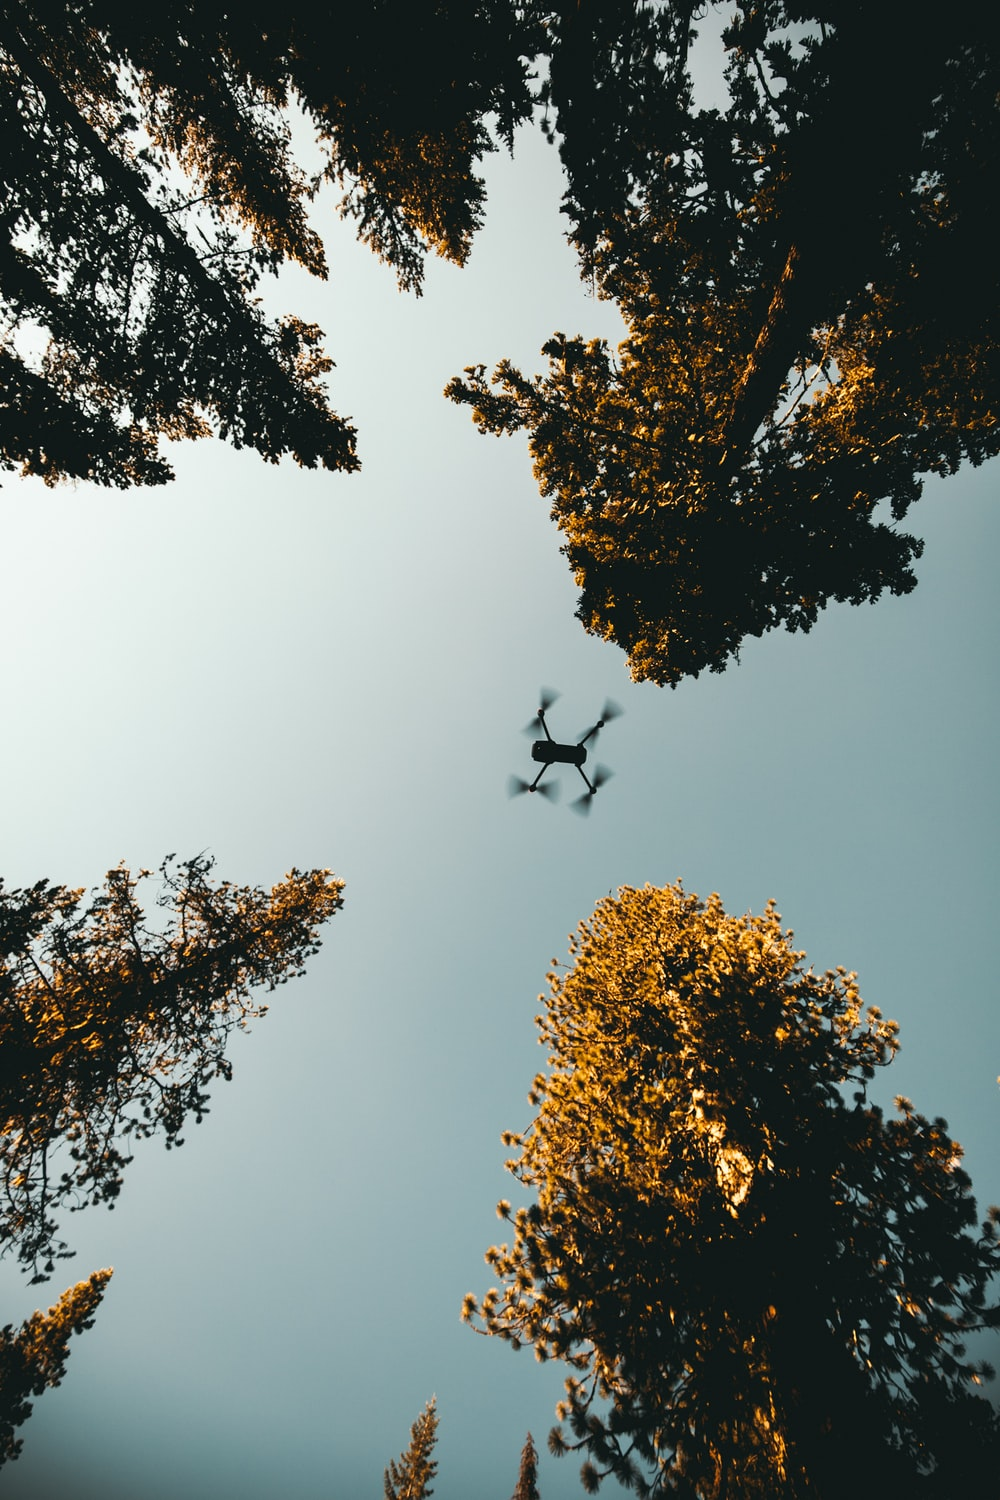 low angle photo of drone near trees